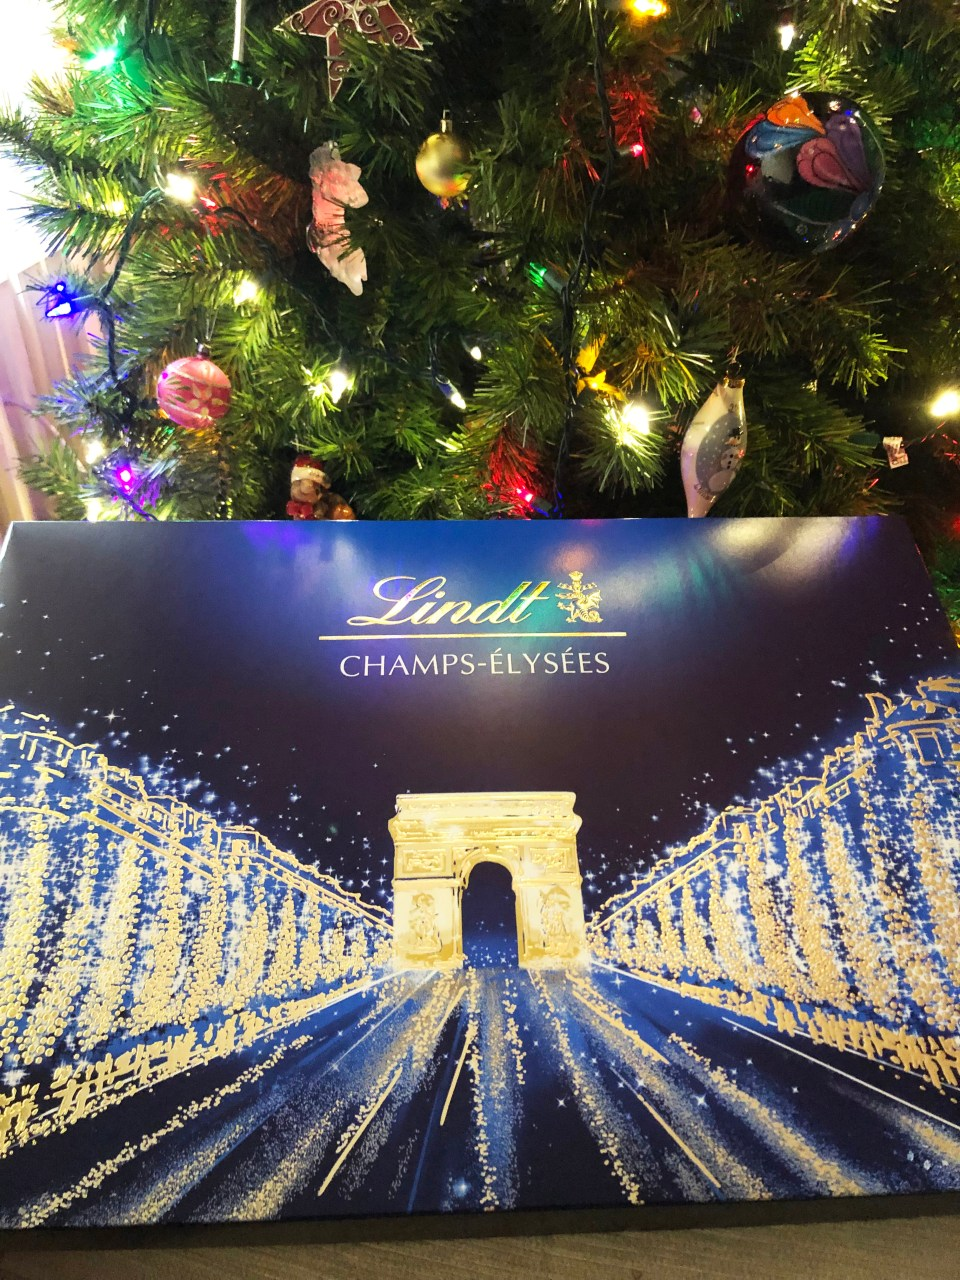 Lindt Champs-Elysees